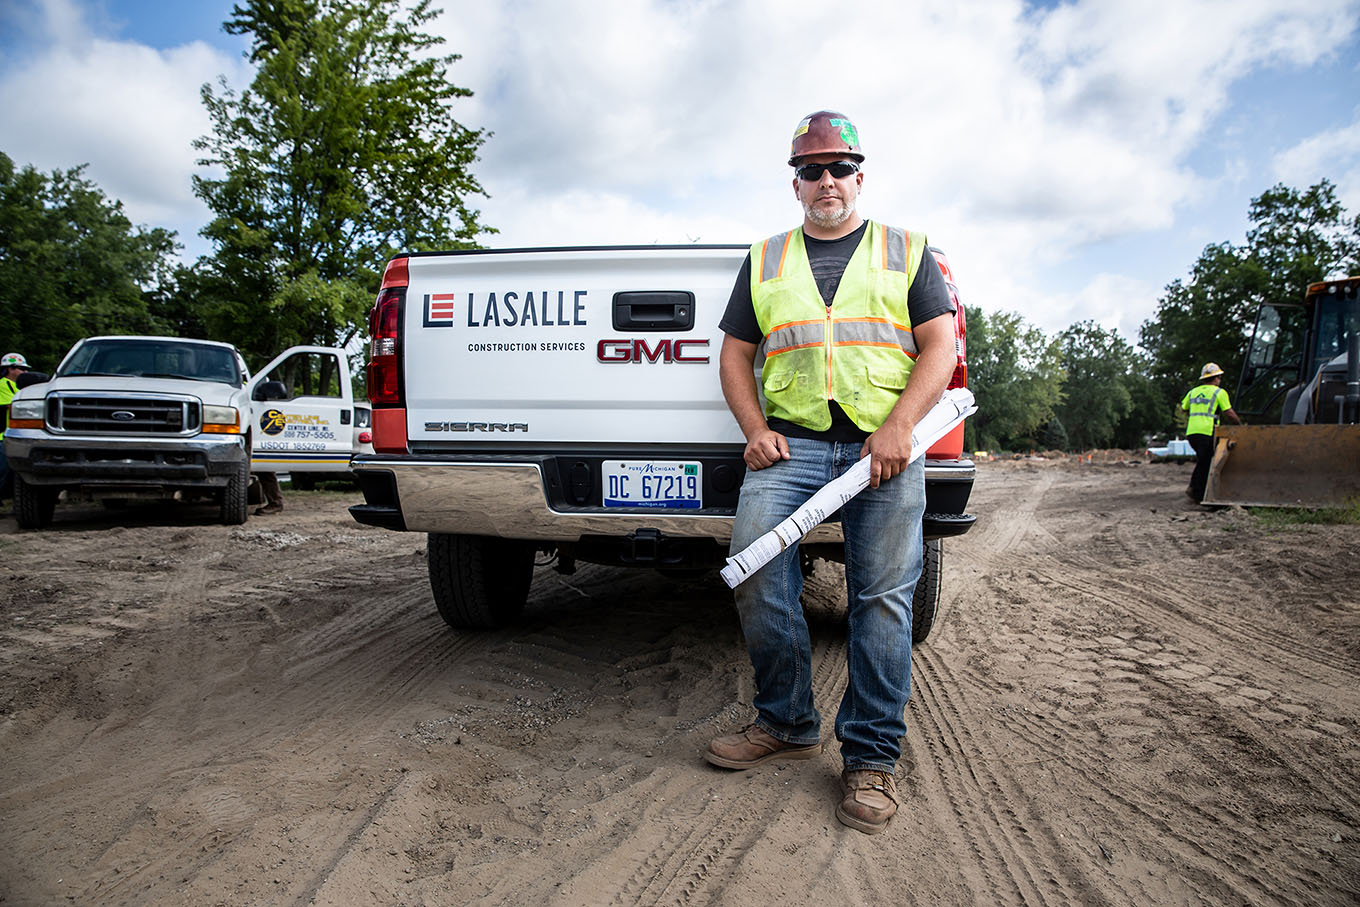 Lasalle Construction Services